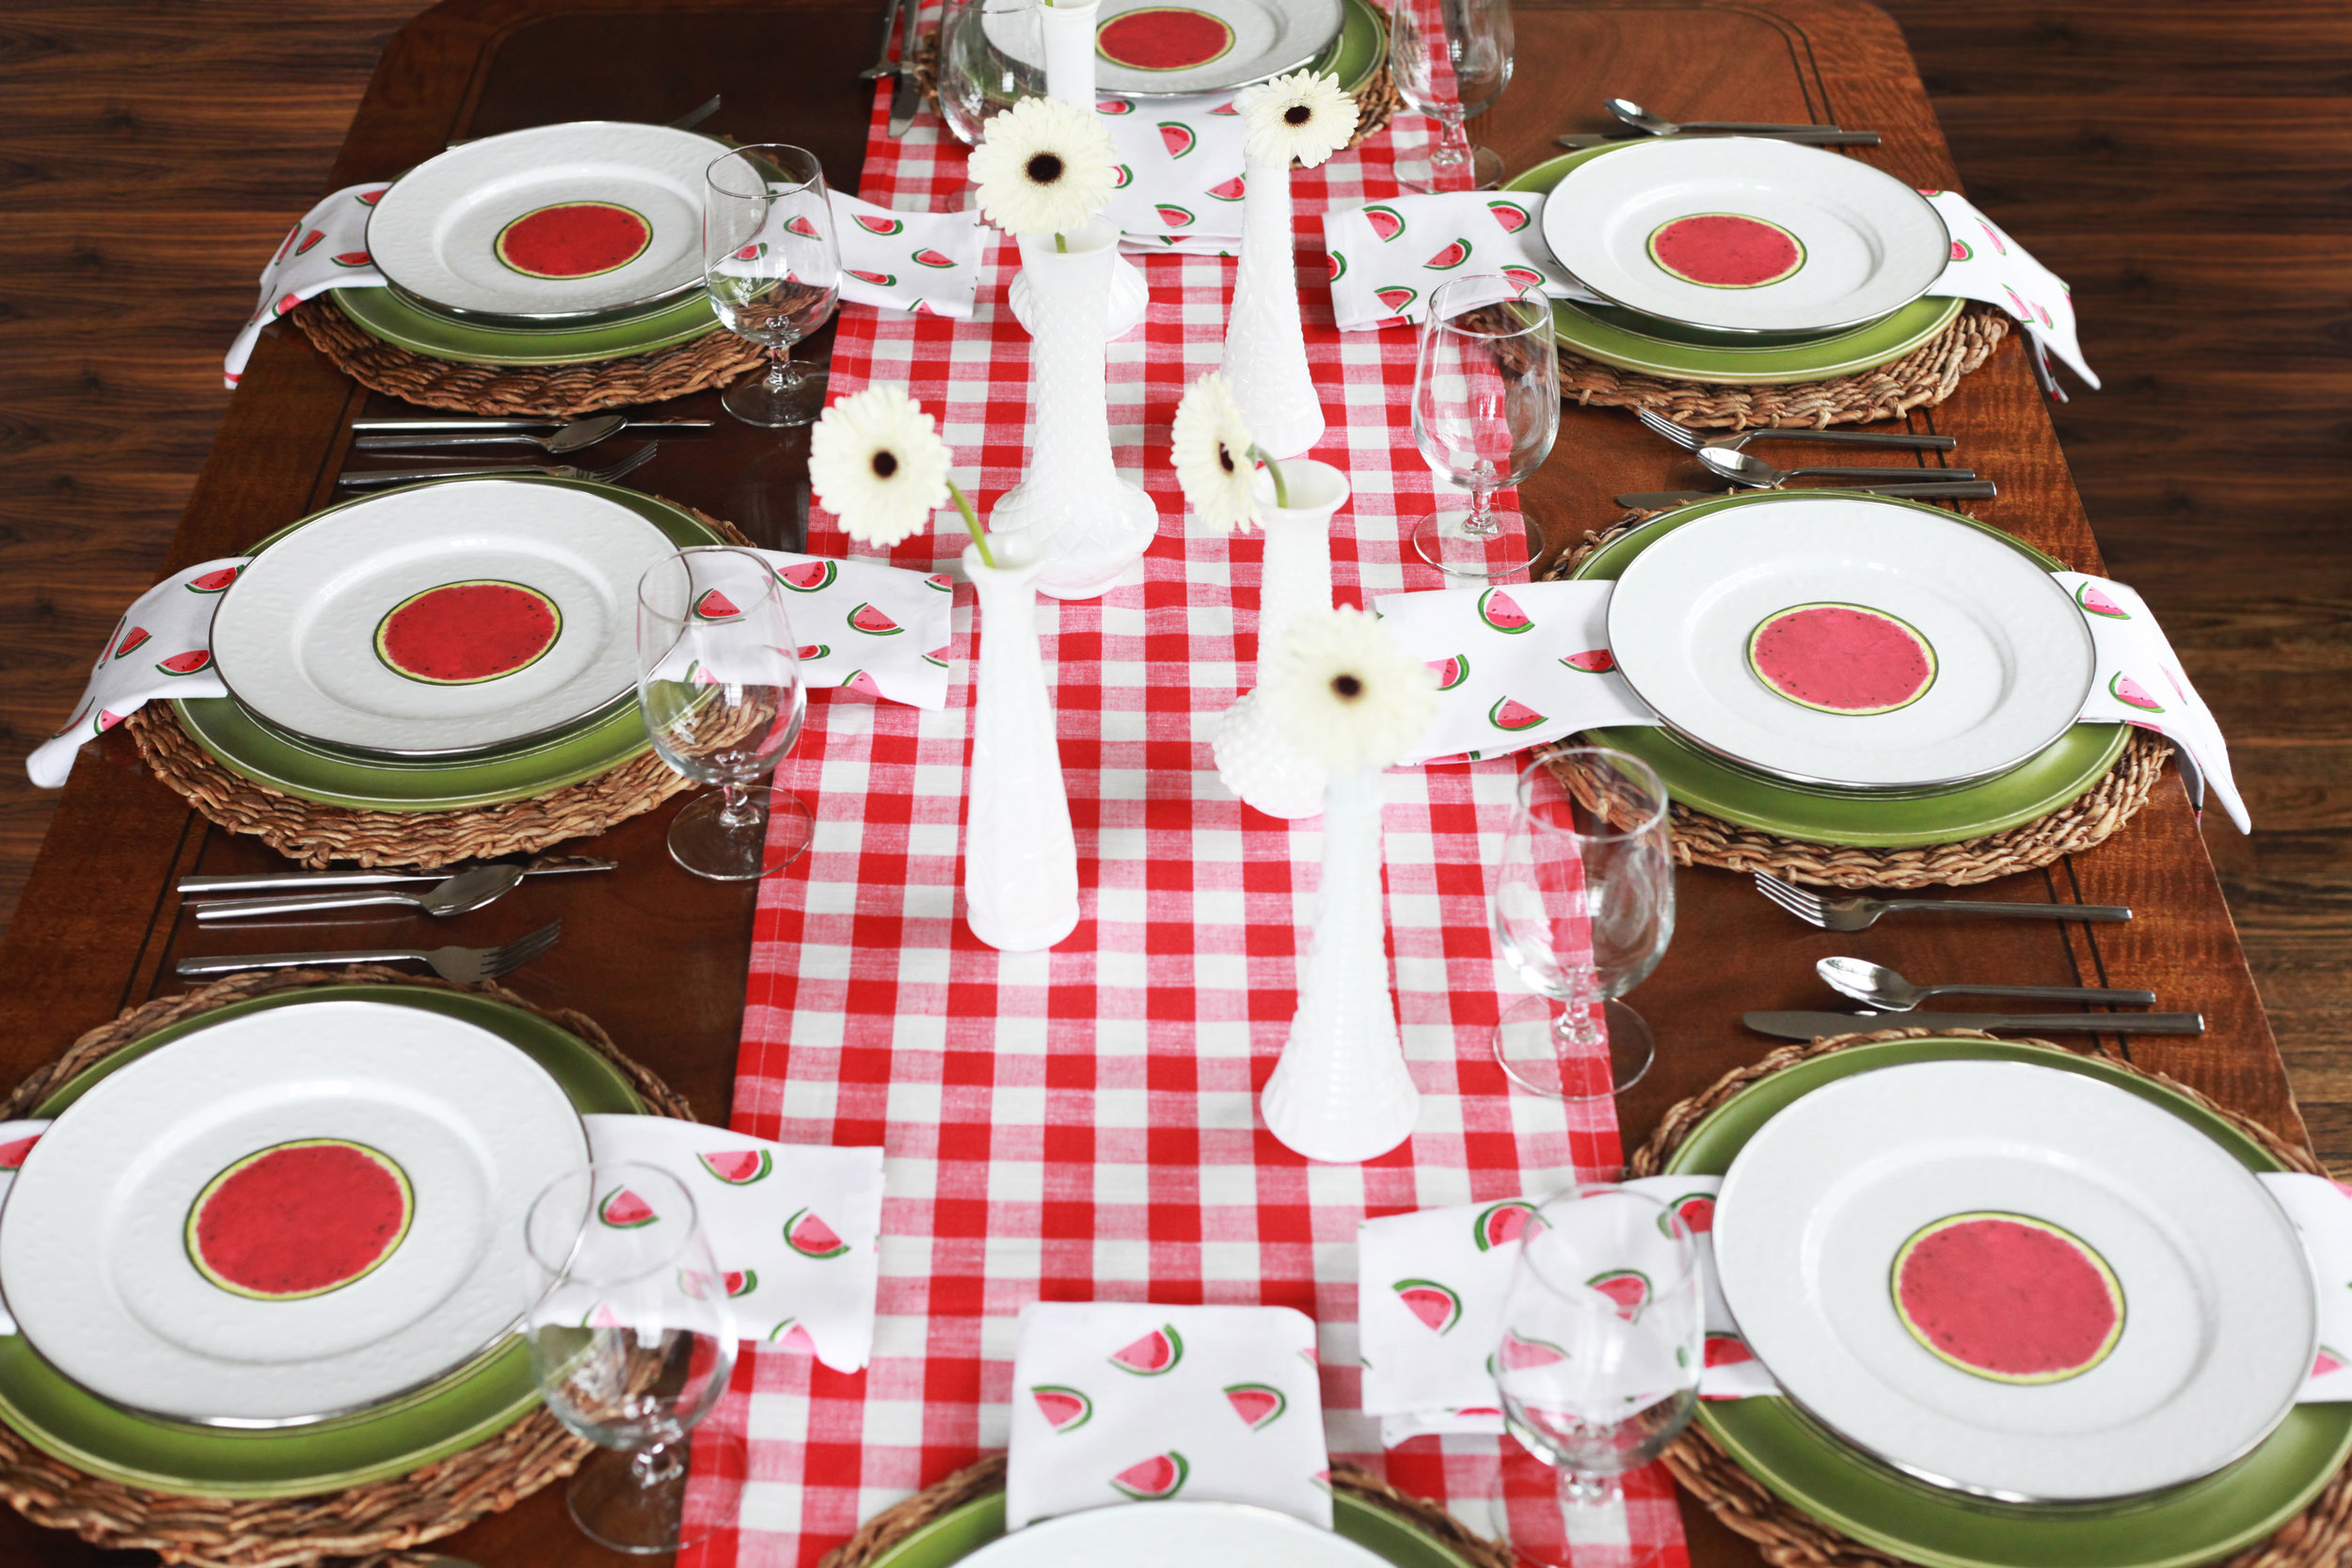 Hello Summer - Tablescape Includes:Red and white checkered table runner, rattan charger, plate, green charger, watermelon themed napkin, silver rimmed plate, watermelon place card$14.99 per TablescapeWhimsical watermelons dancing on the napkins is sure to launch summertime at your next gathering! This refreshing tablescape is fun and cheerful; perfect for spring and summer!